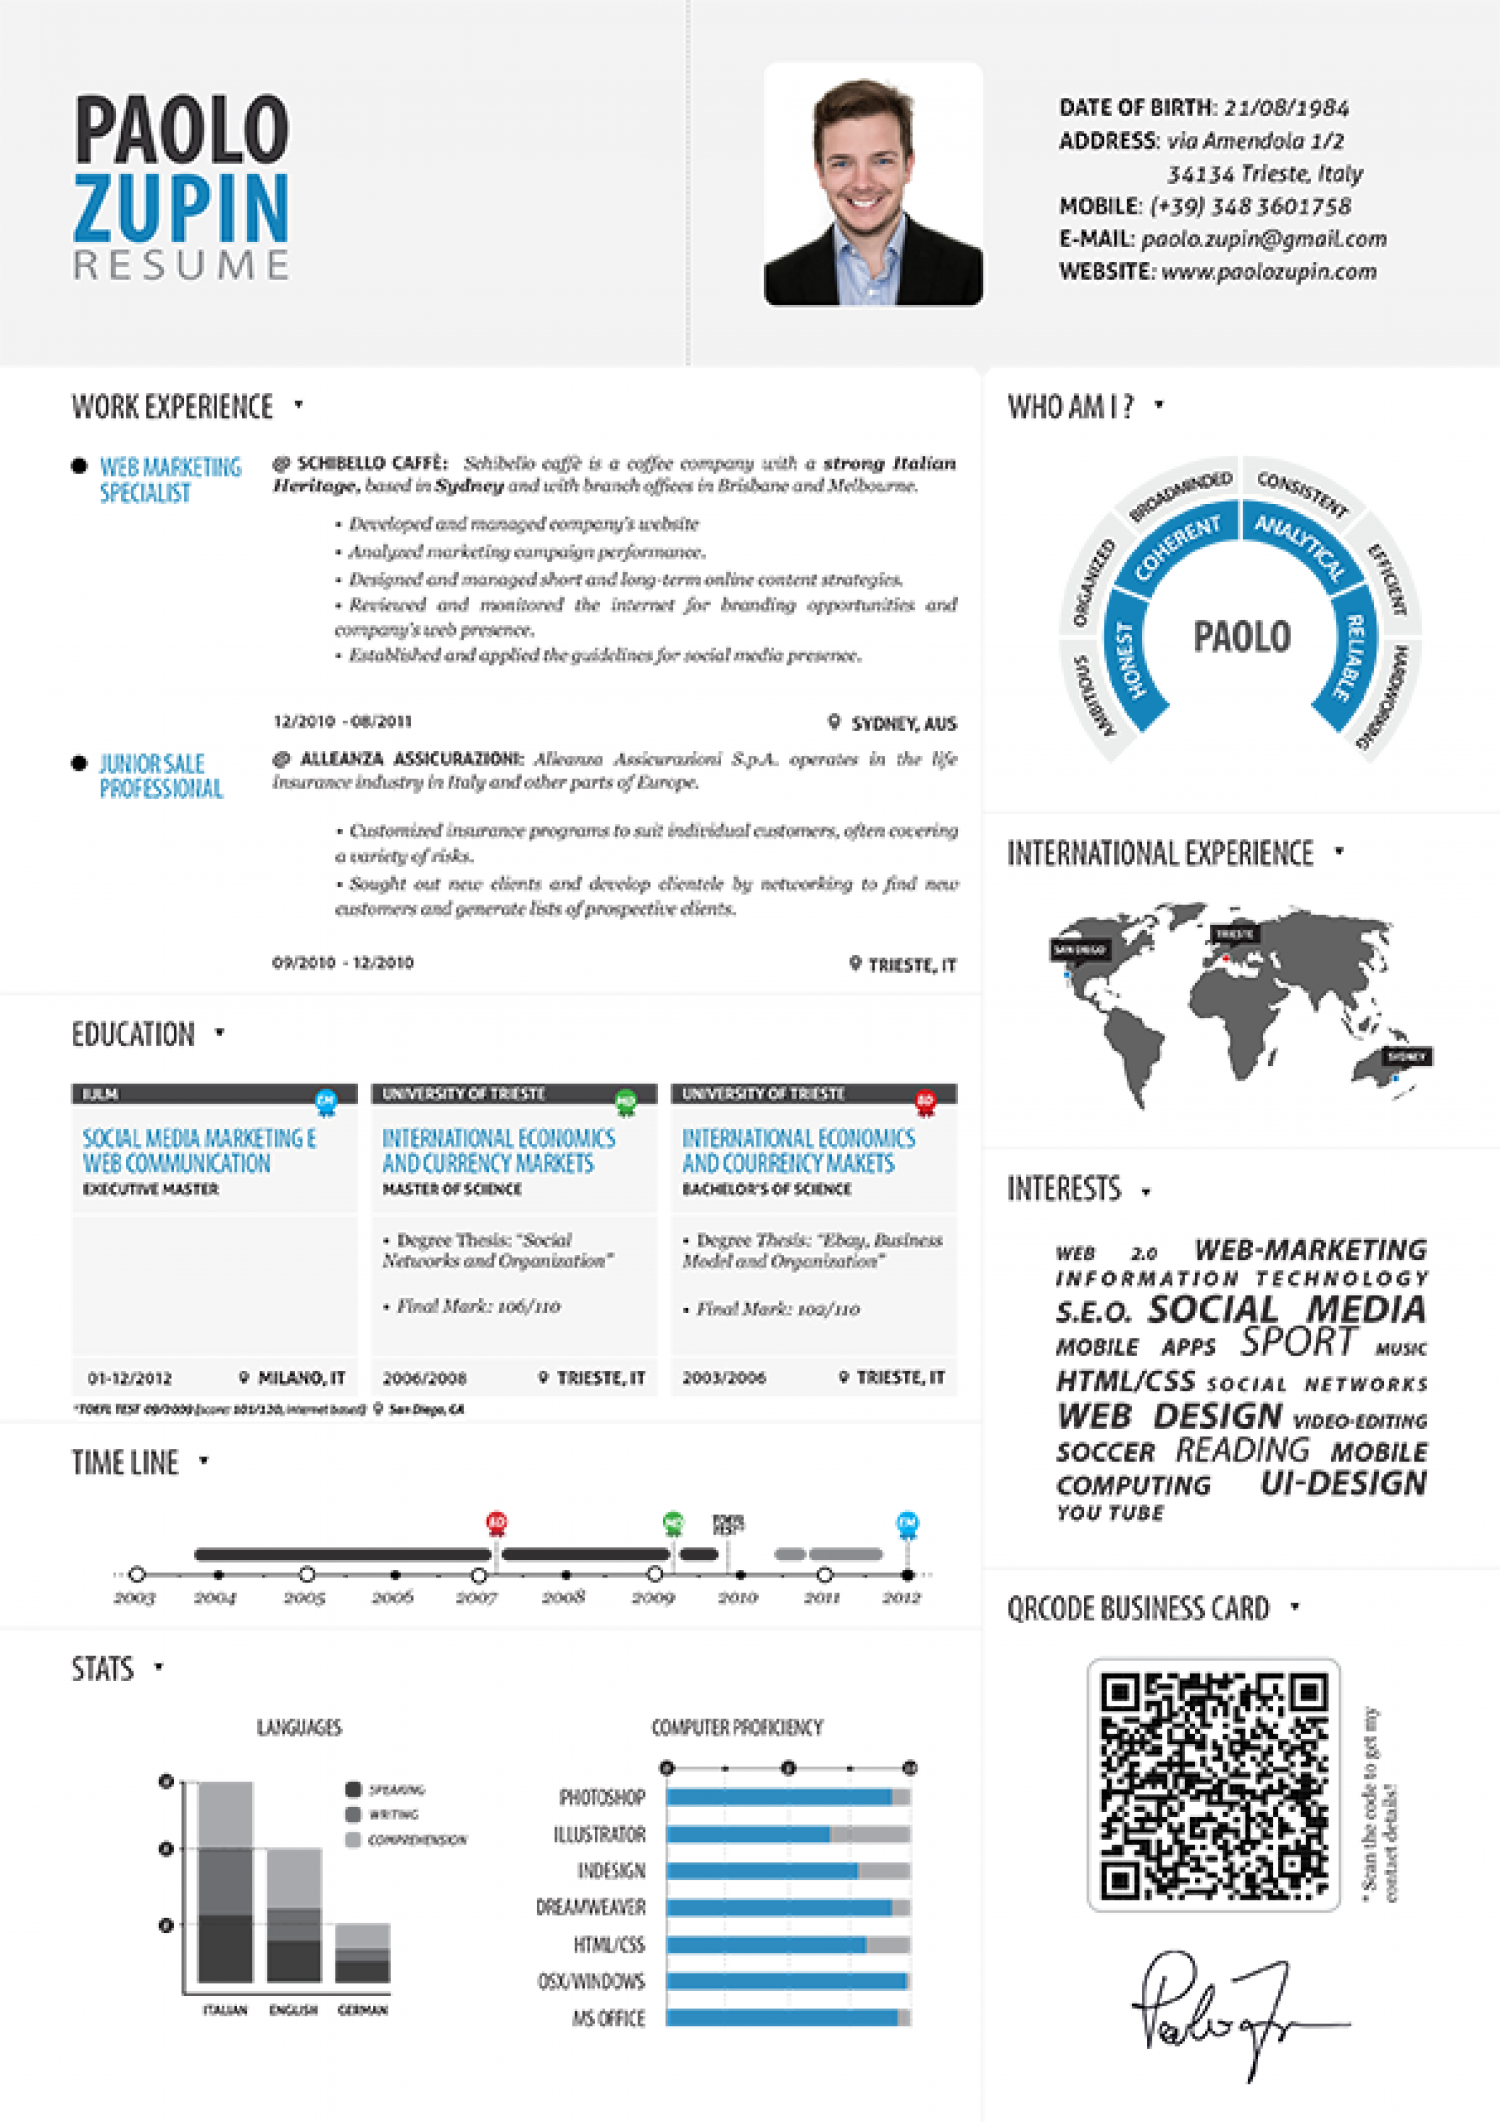 Infographic Resumes latest resume trends designs and samples Resume Infographic